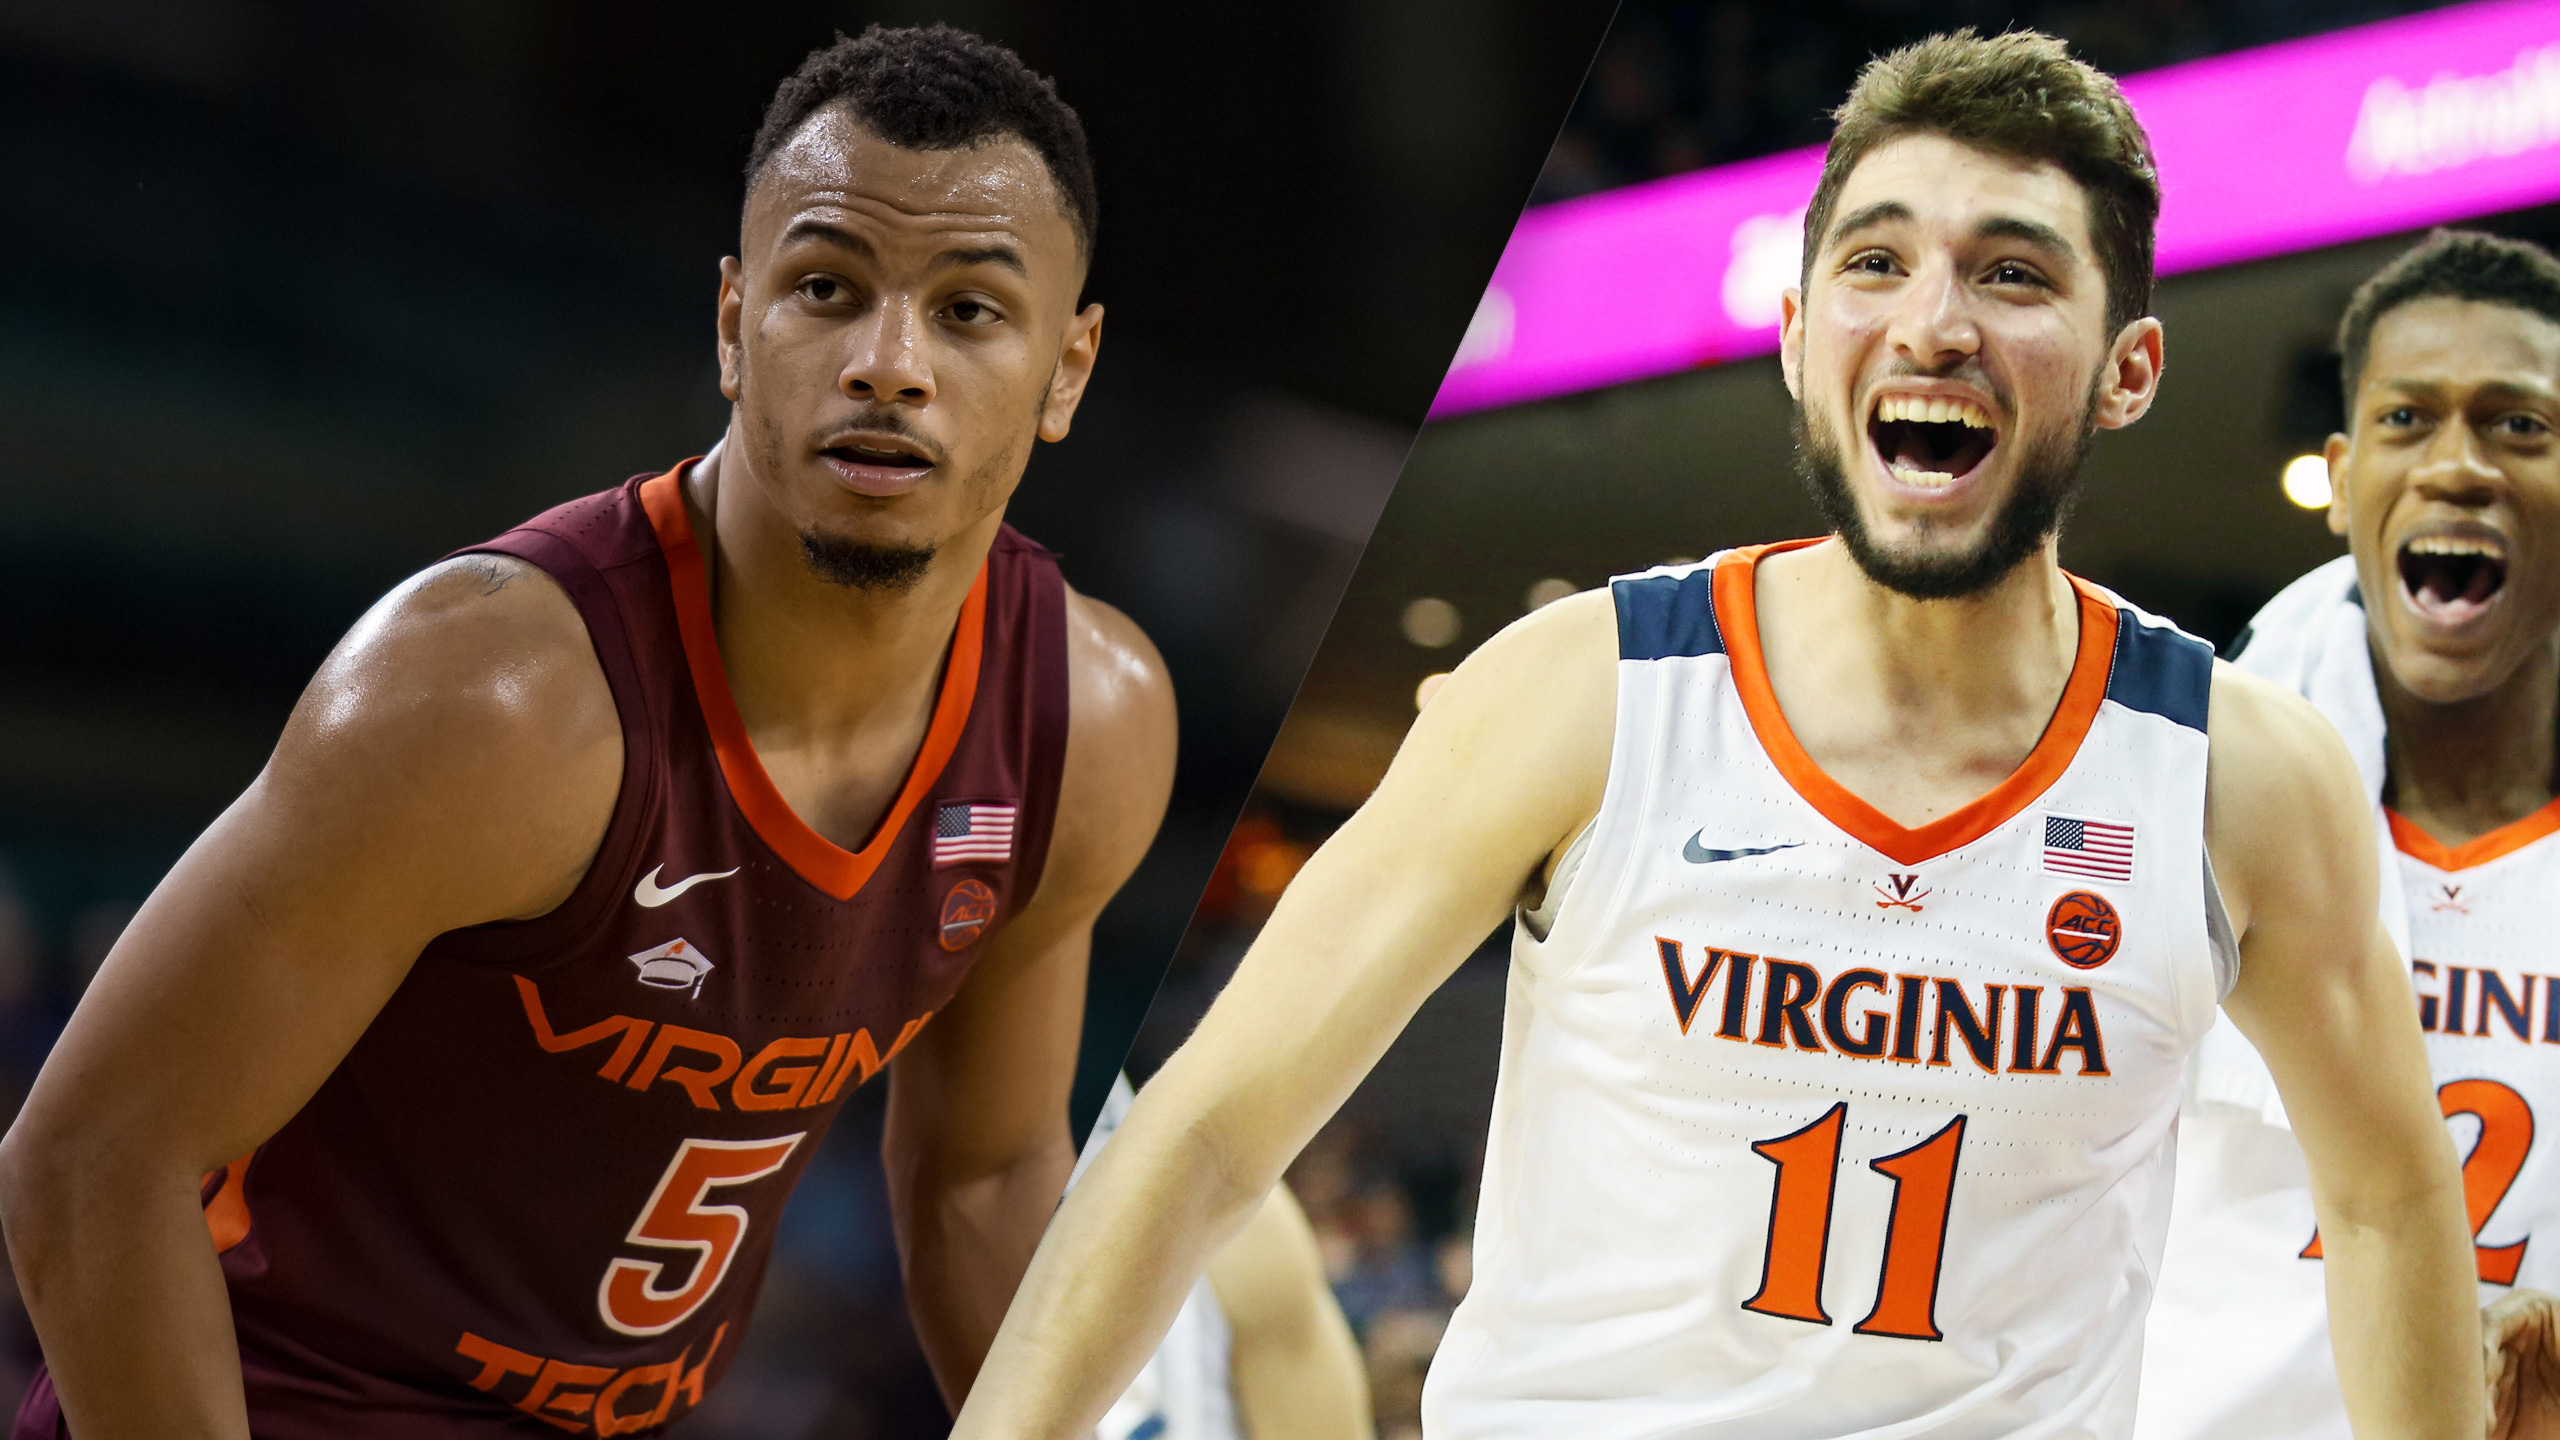 #9 Virginia Tech vs. #4 Virginia (M Basketball)